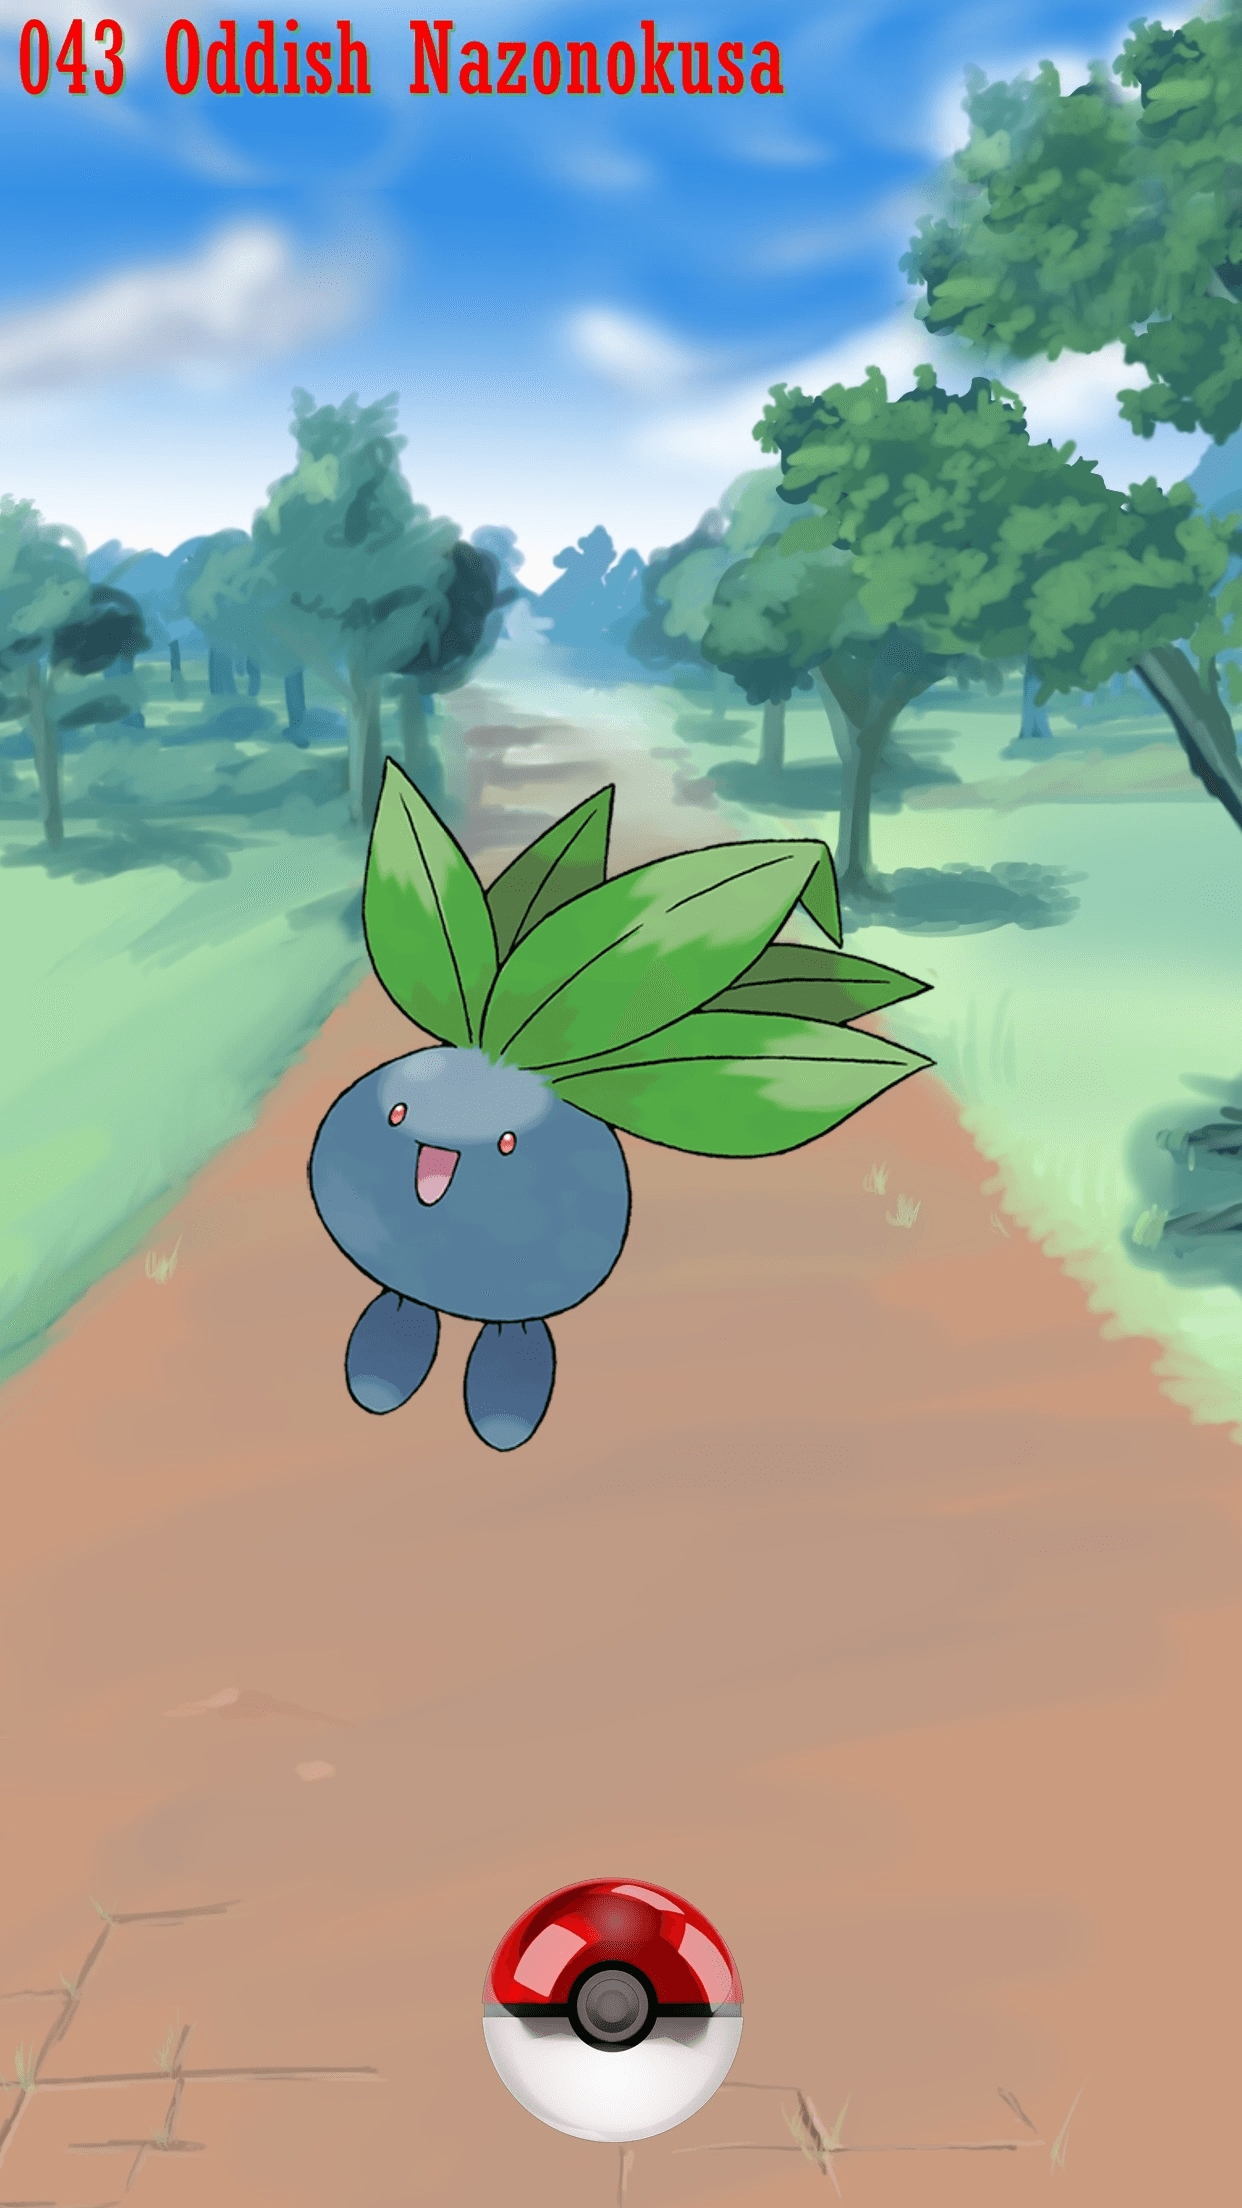 043 Street Pokeball Oddish Nazonokusa | Wallpaper